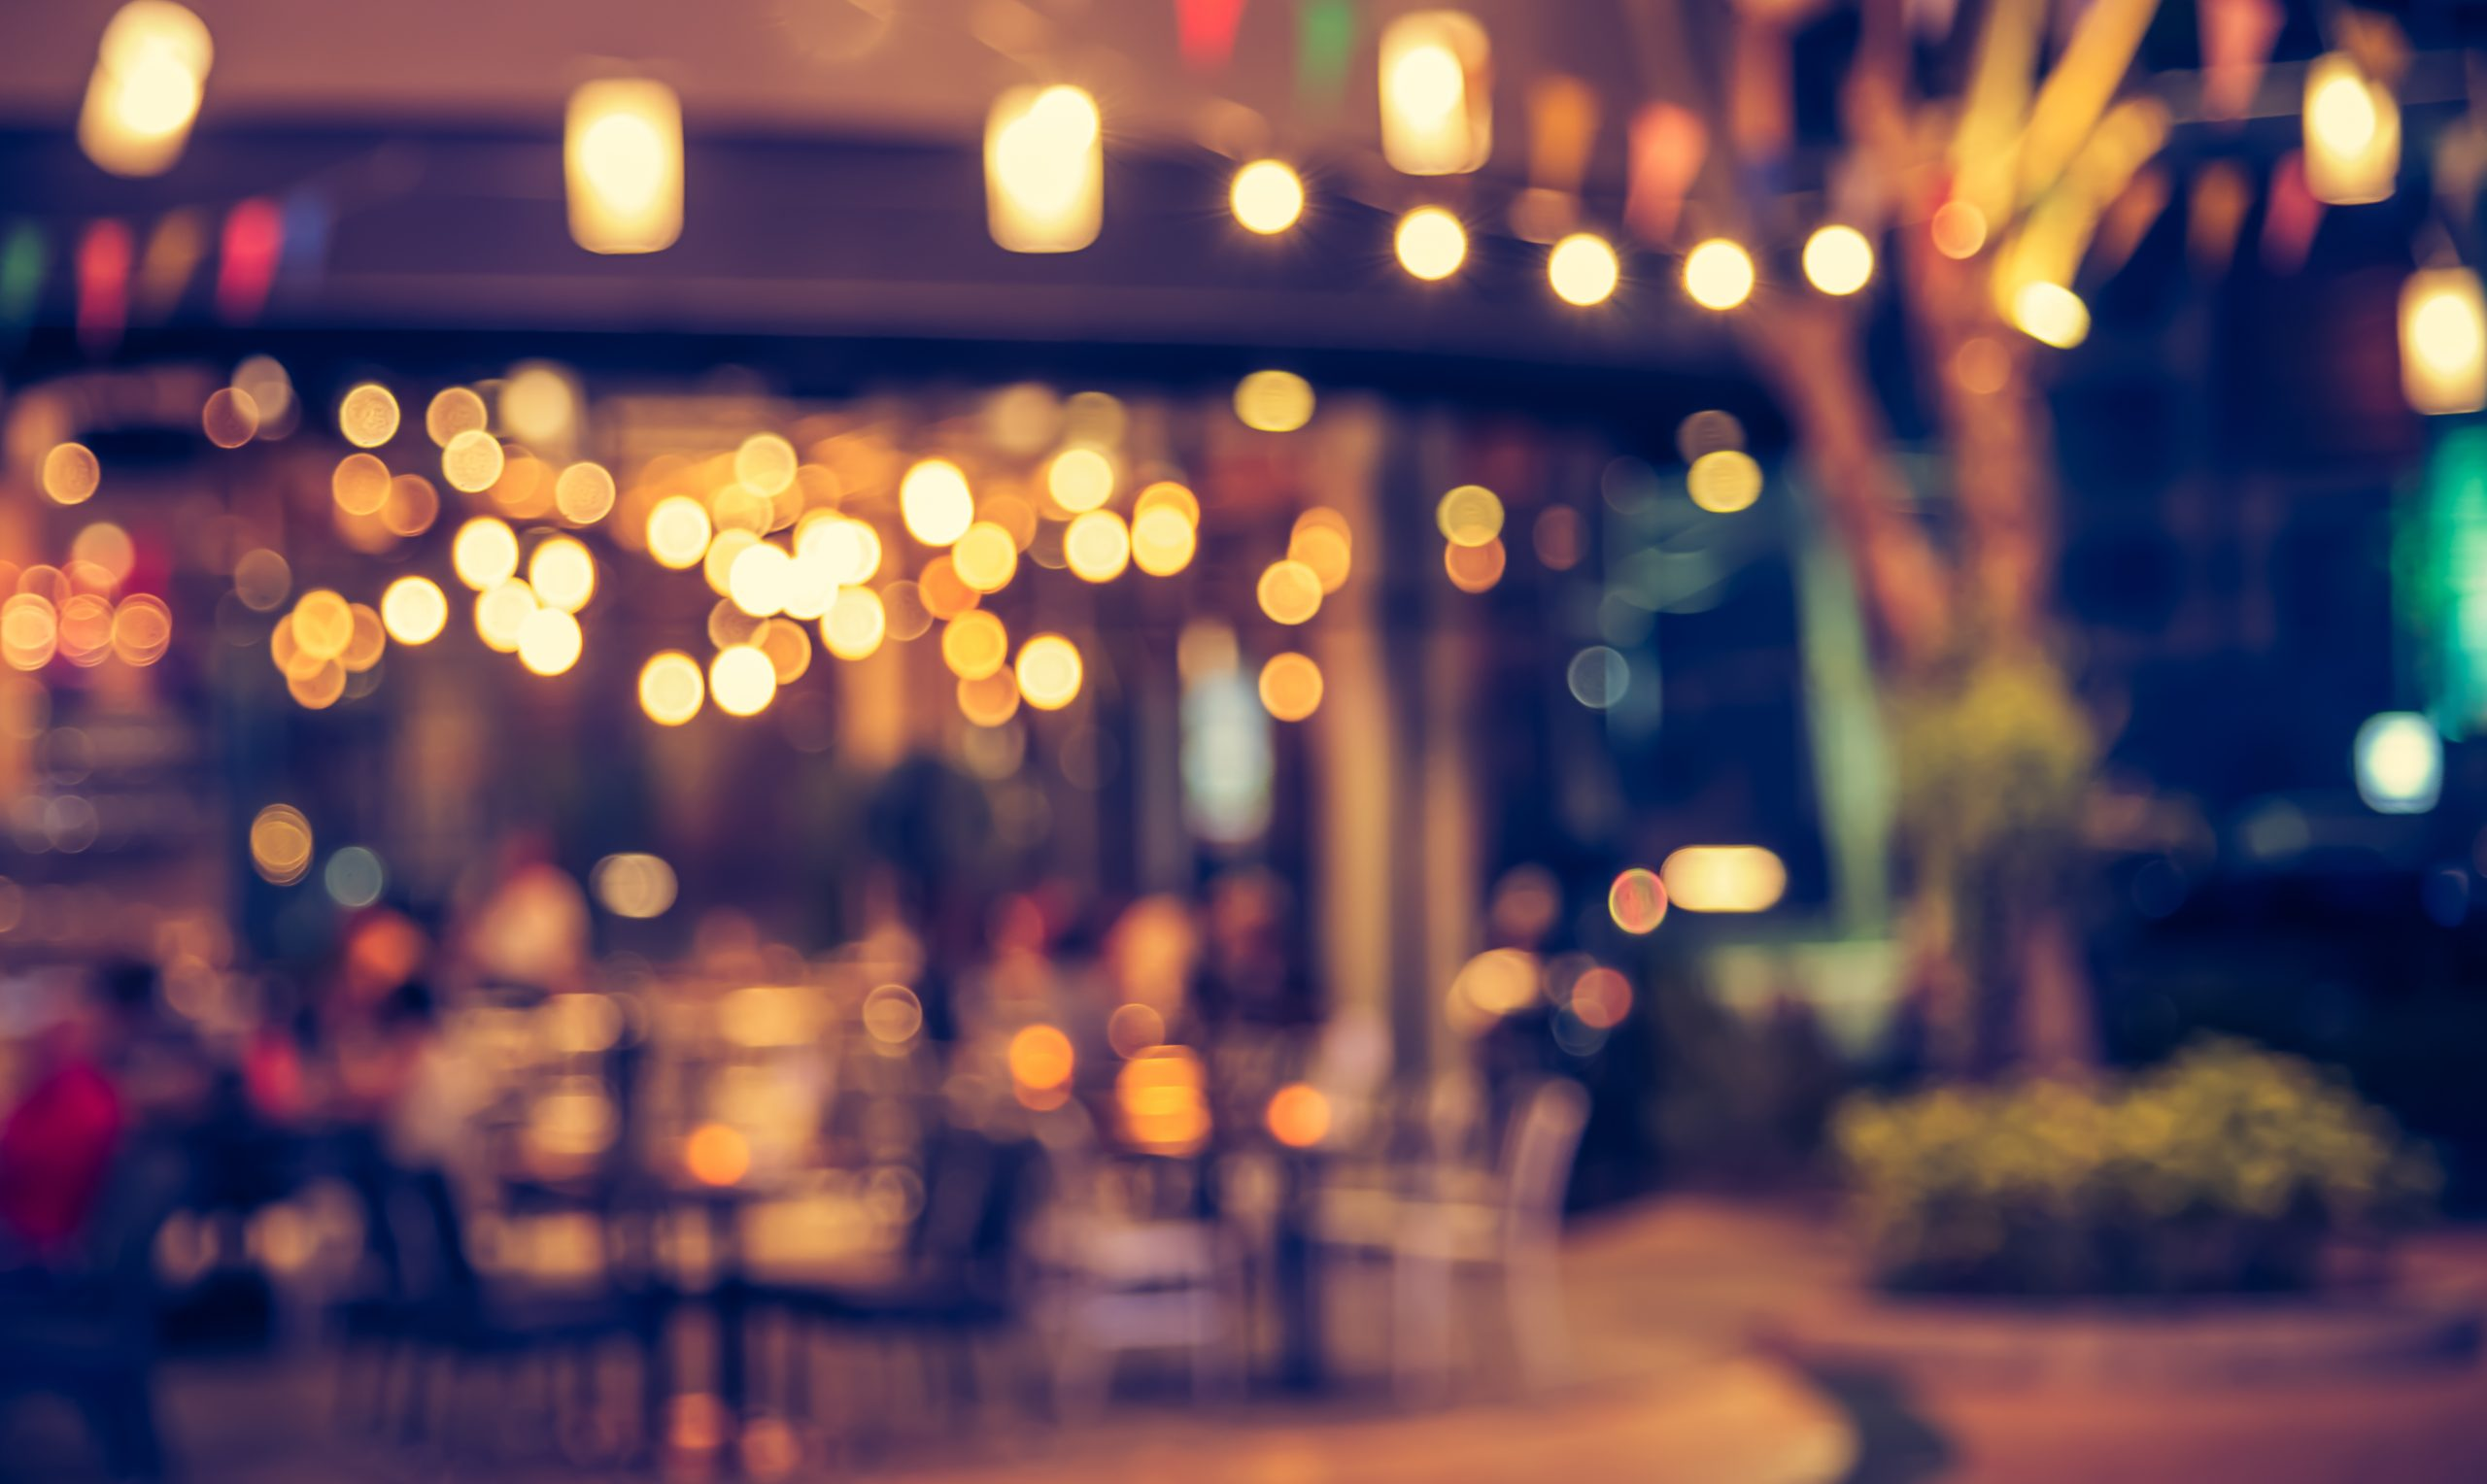 Join us in Aspen on our outdoor patio for food and drinks